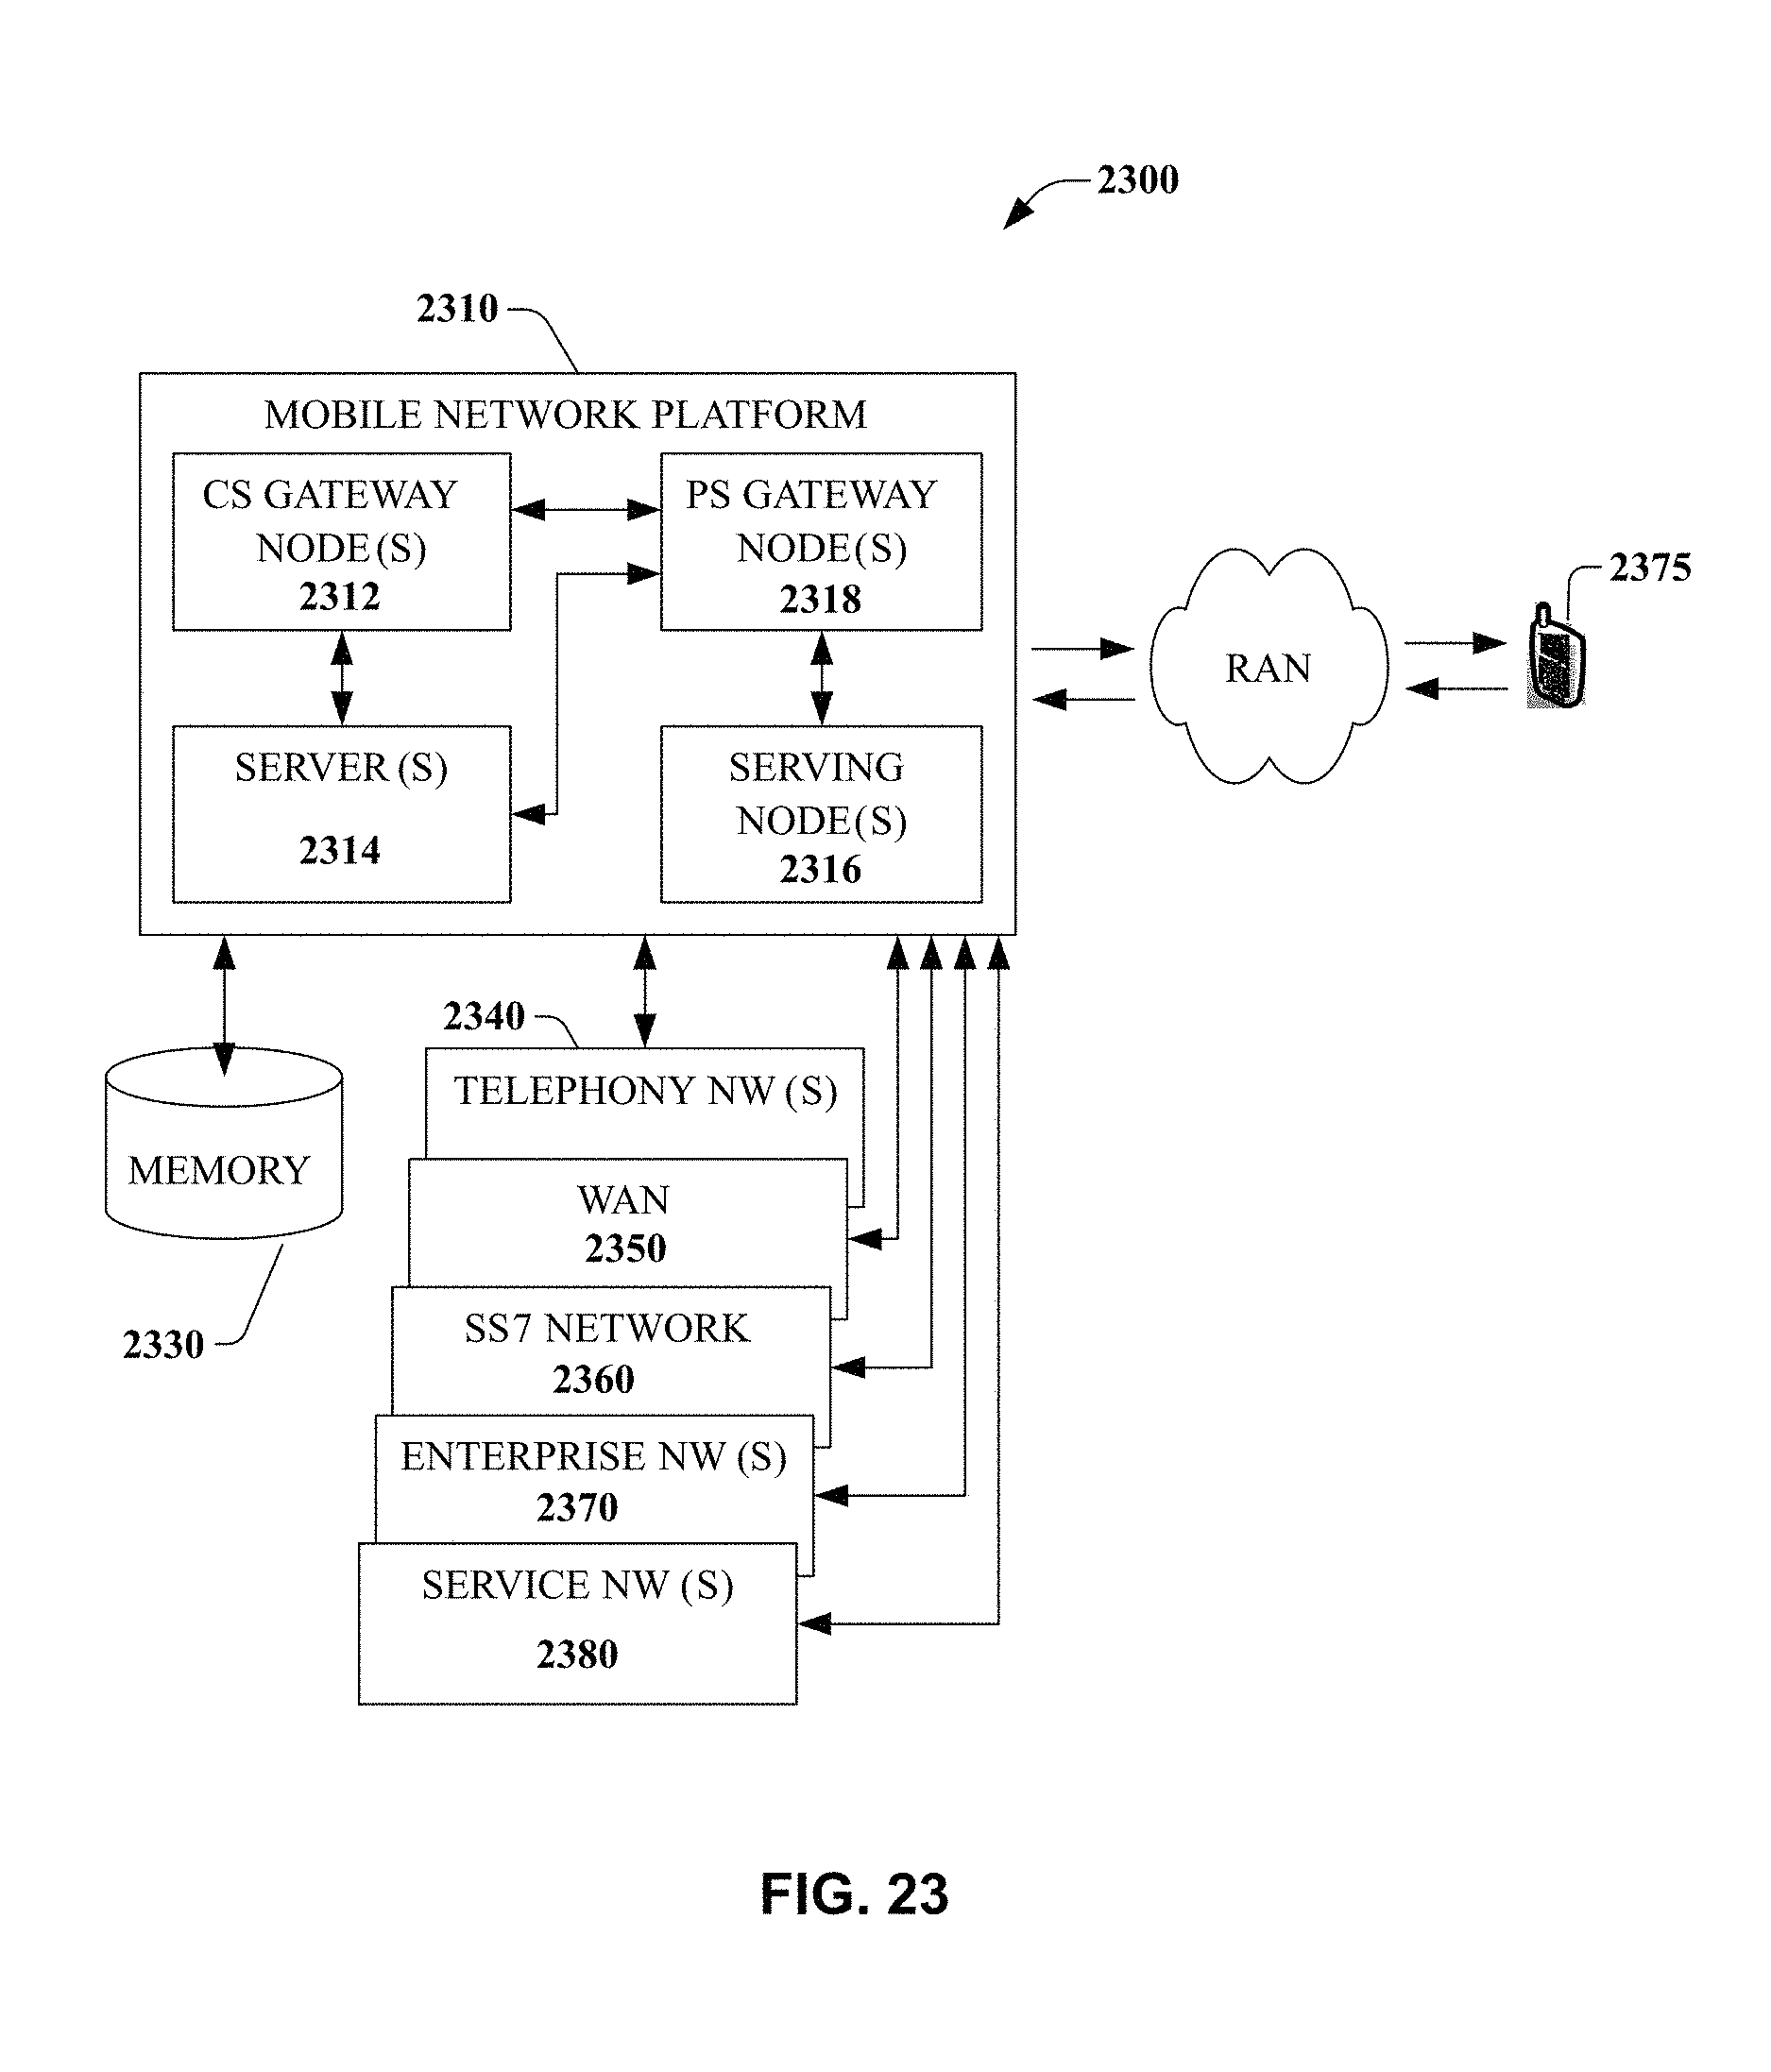 us9838896b1 method and apparatus for assessing network coverage Two-Phase Electric Power us9838896b1 method and apparatus for assessing network coverage patents